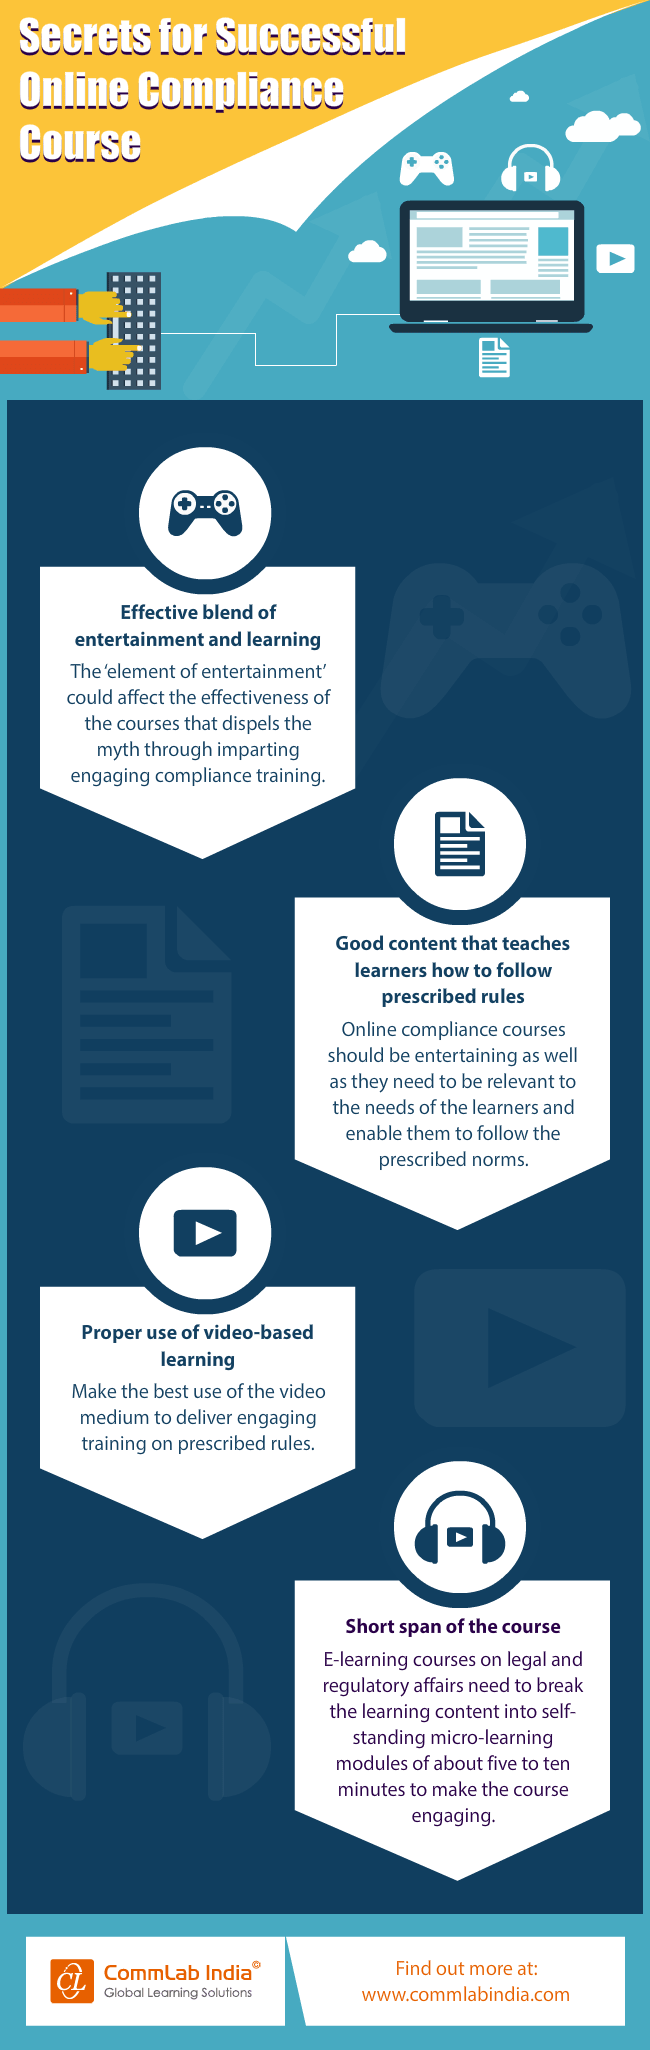 4 Stunning Breakthroughs for Successful Online Compliance Training [Infographic]